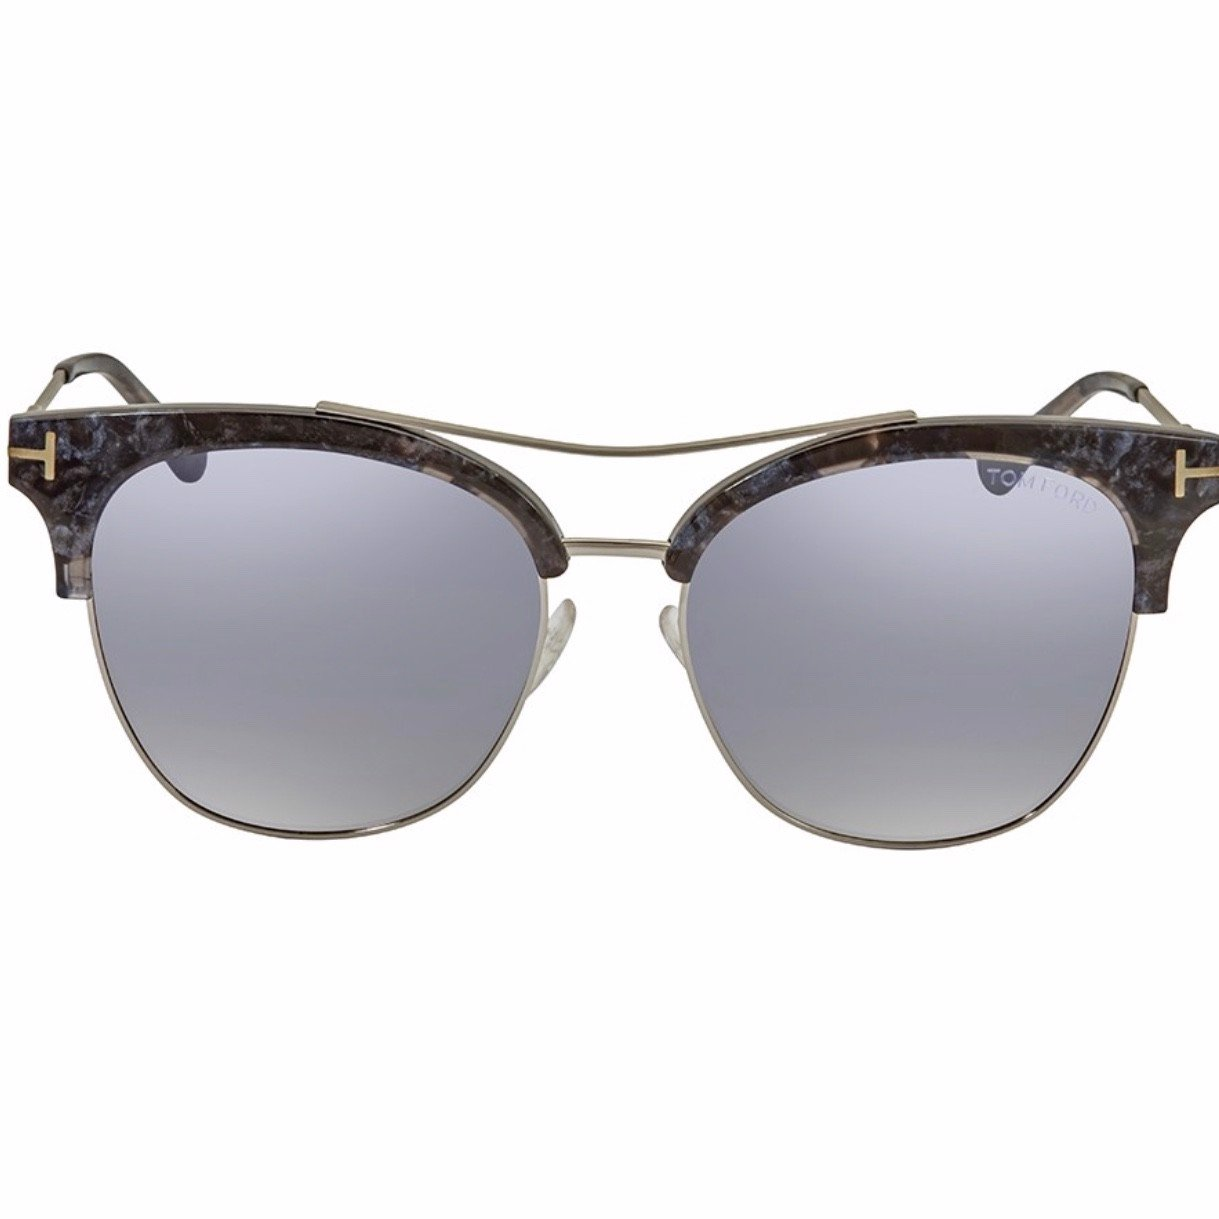 Tom Ford Silver Mirror Cat Eye Ladies Sunglasses